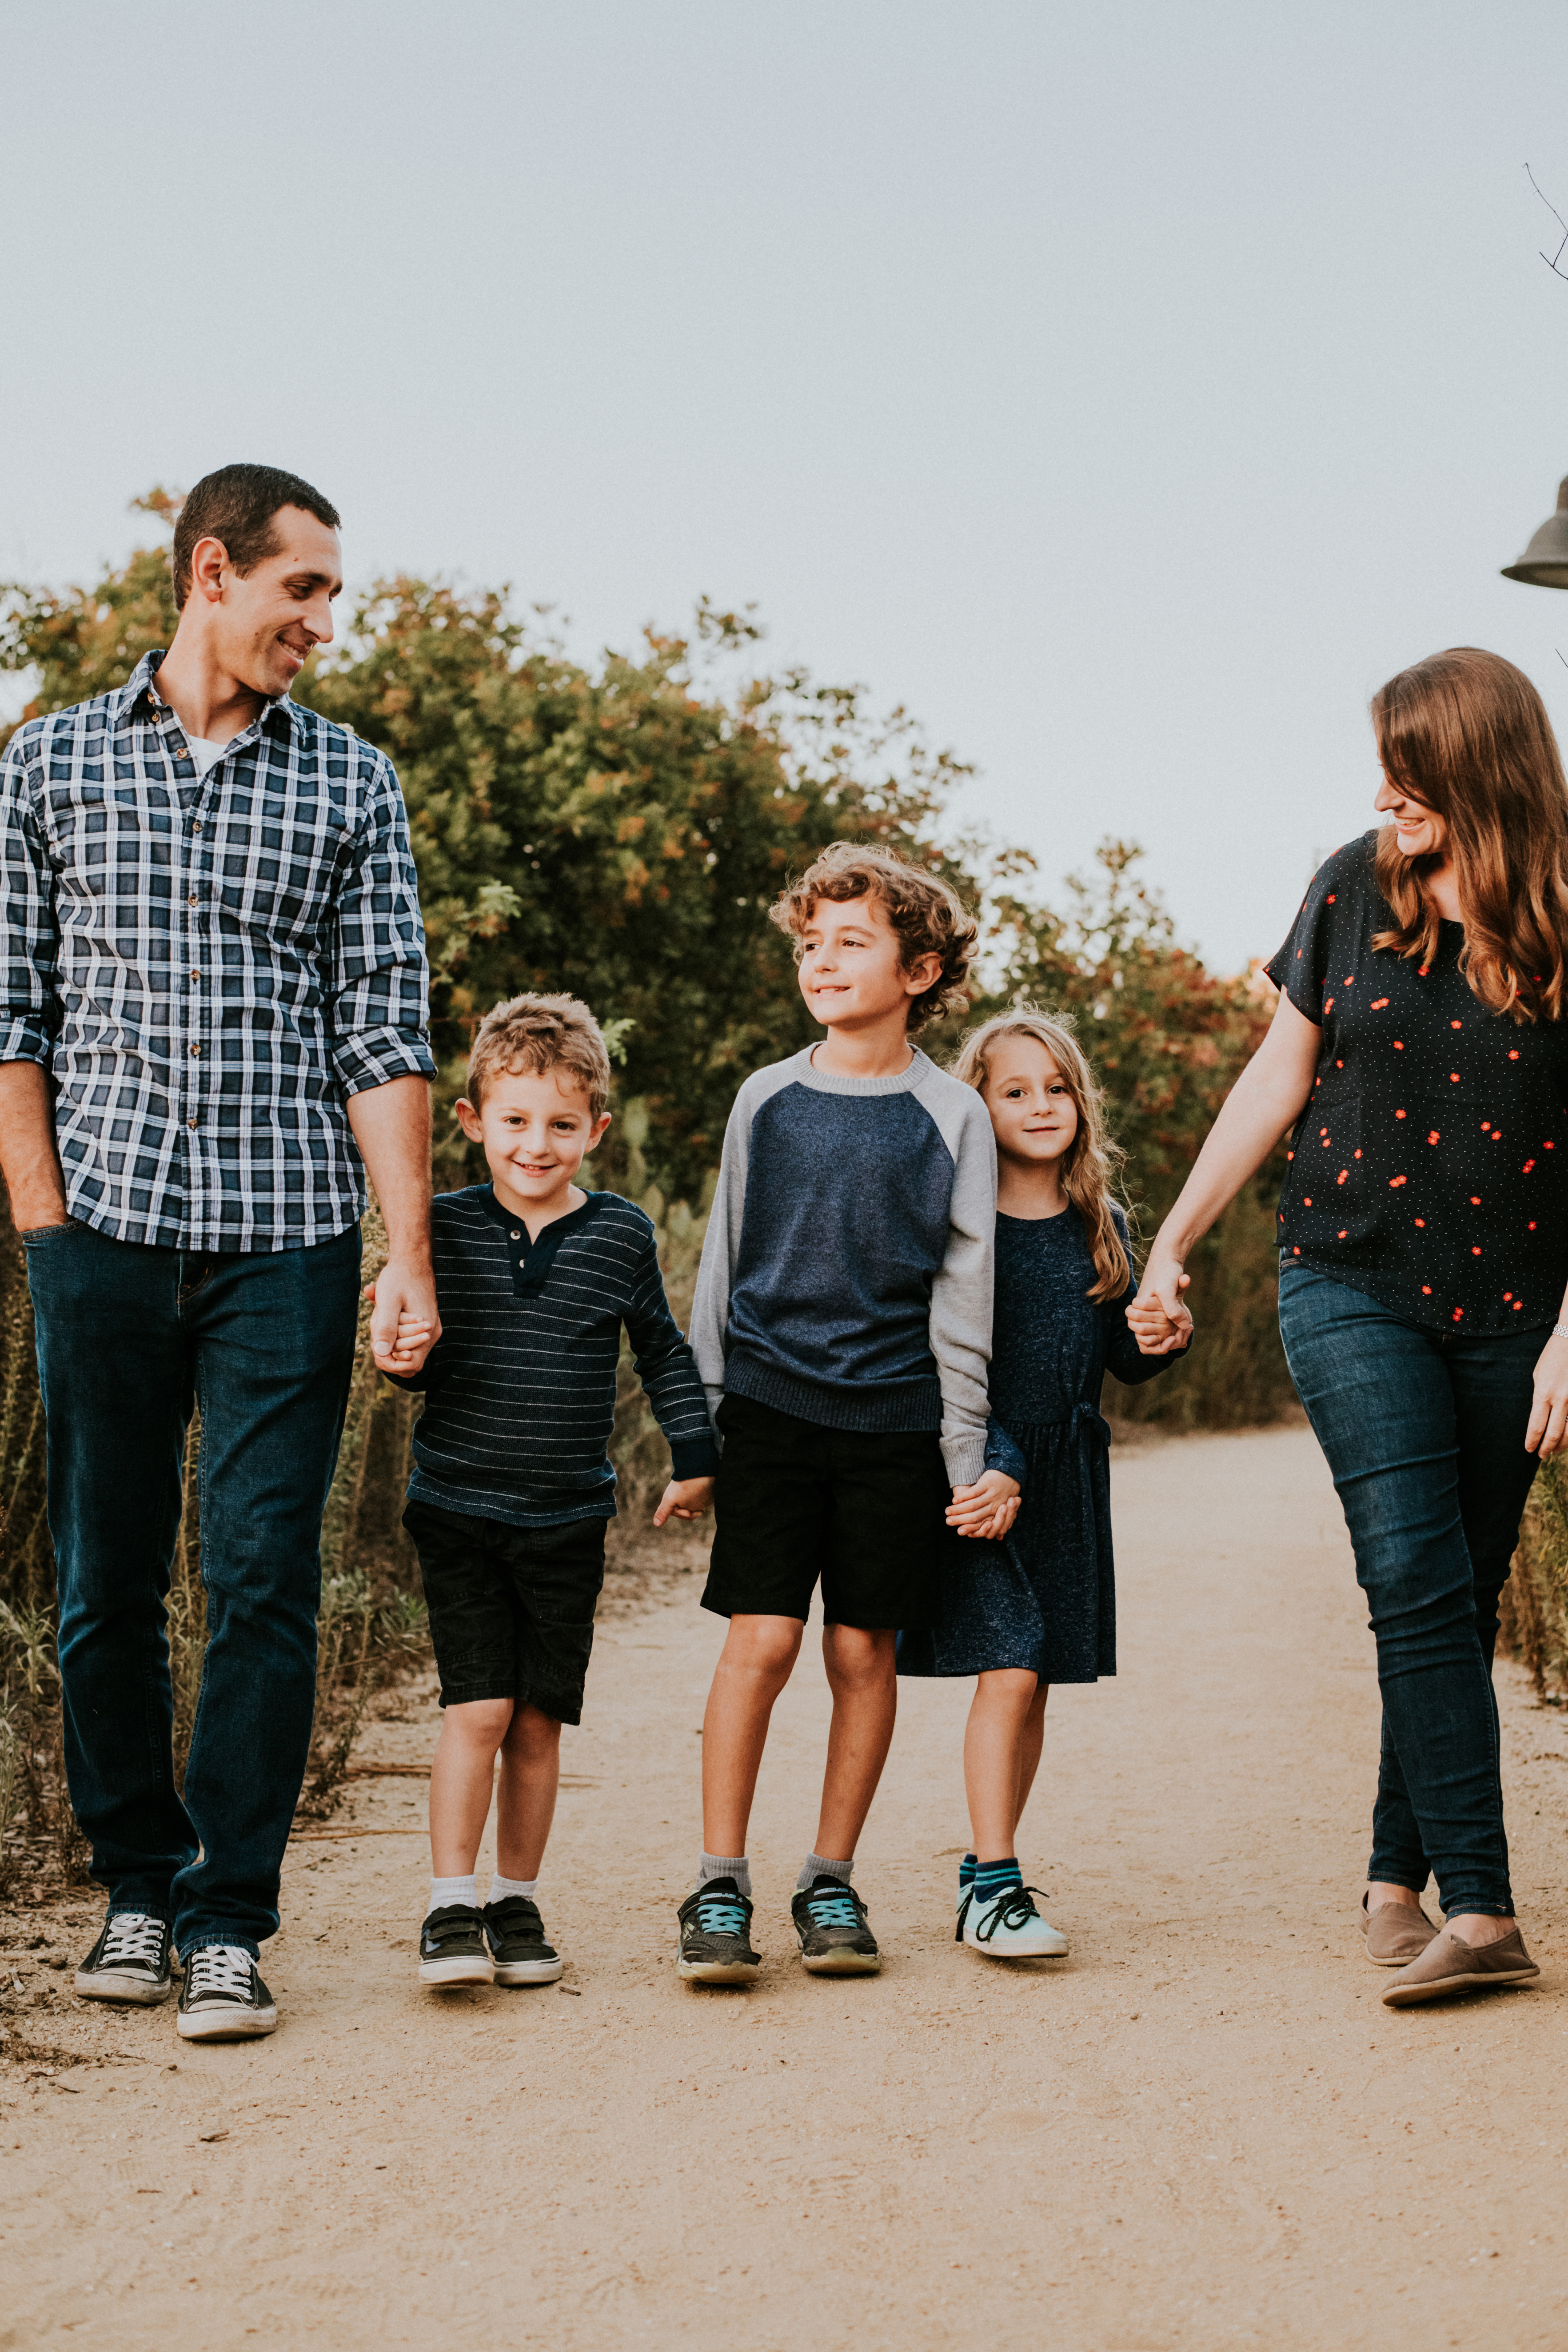 family walking holding hands in park family photography los angeles california